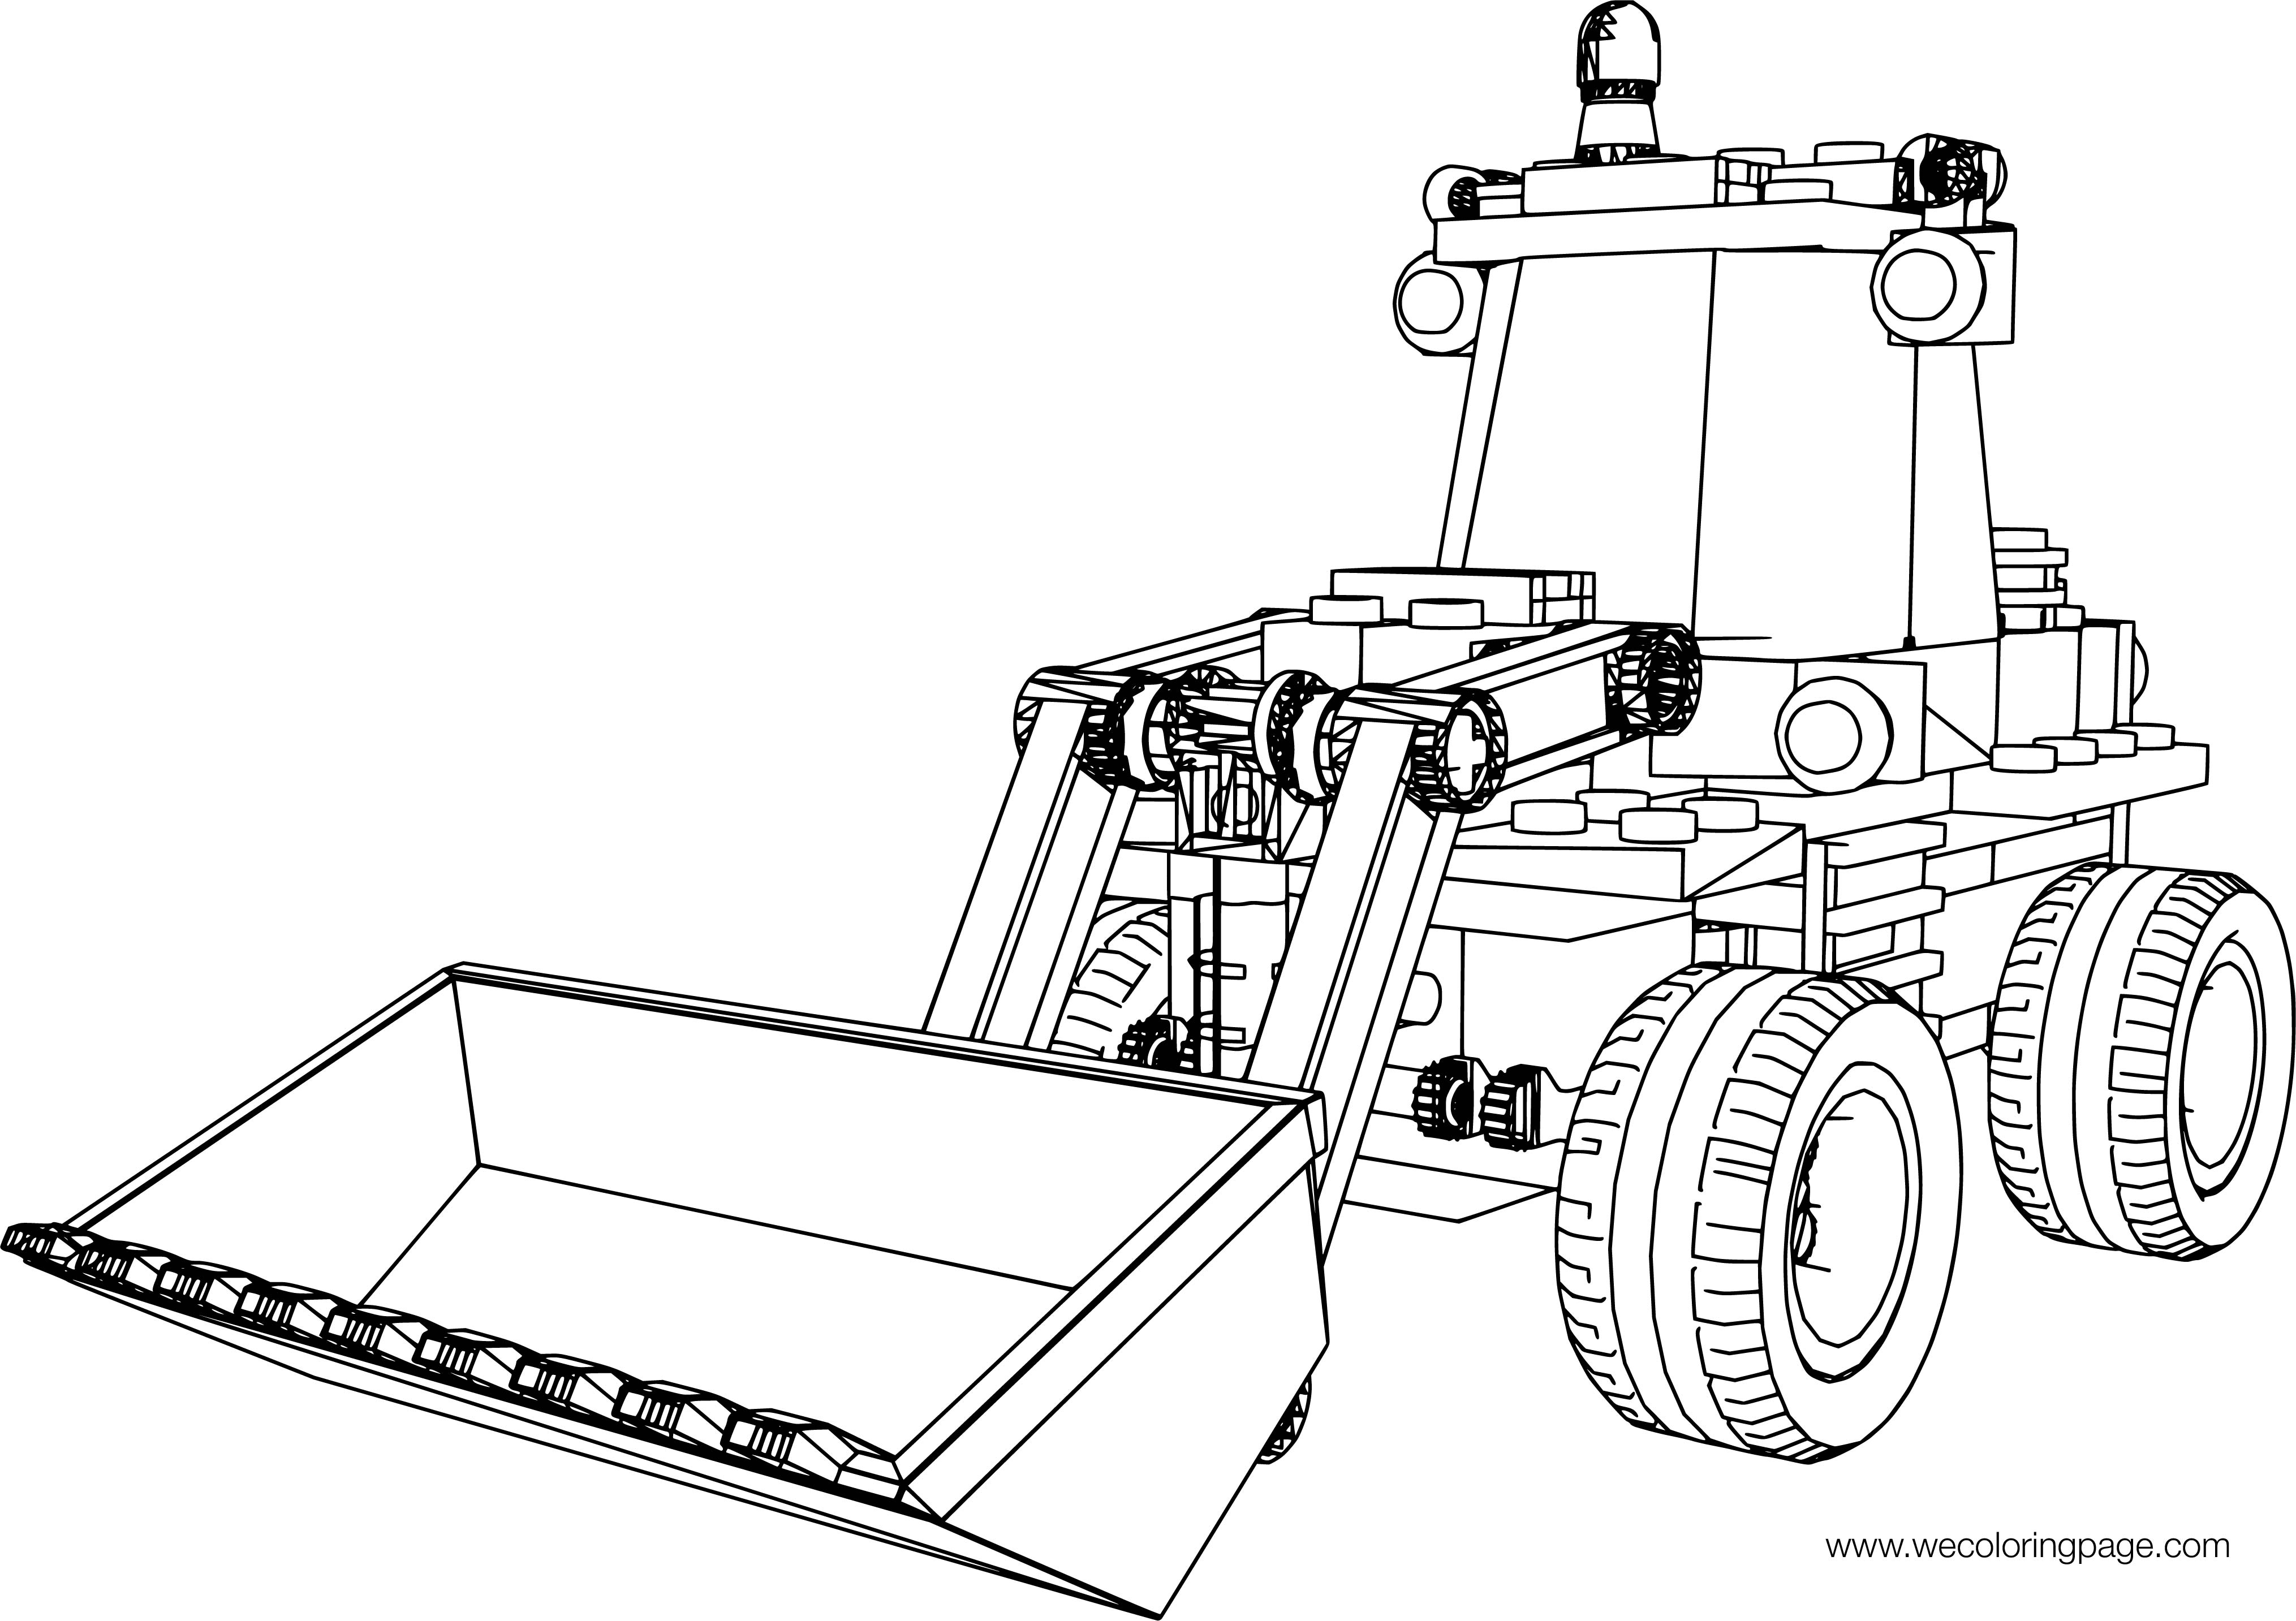 Lego Excavator Truck Up View Coloring Page Wecoloringpage Com